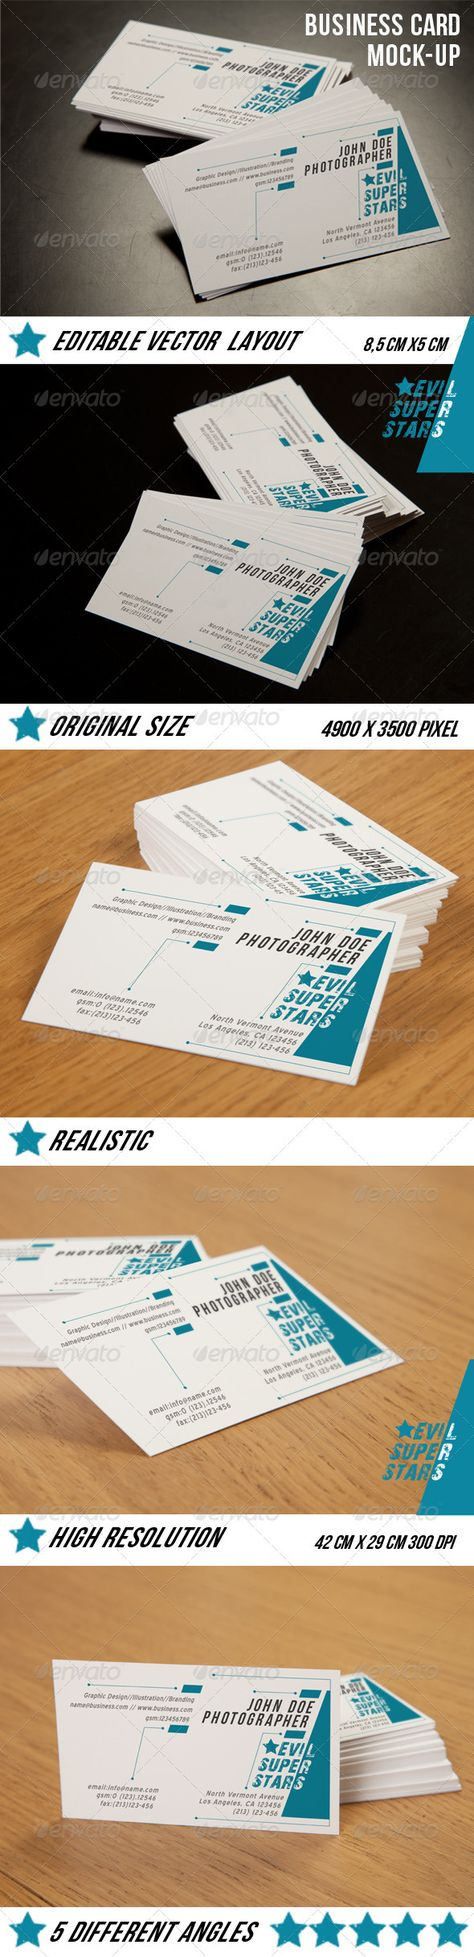 Business Card Mockup — Photoshop PSD #mockups #calling card • Available here → https://graphicriver.net/item/business-card-mockup/3864904?ref=pxcr